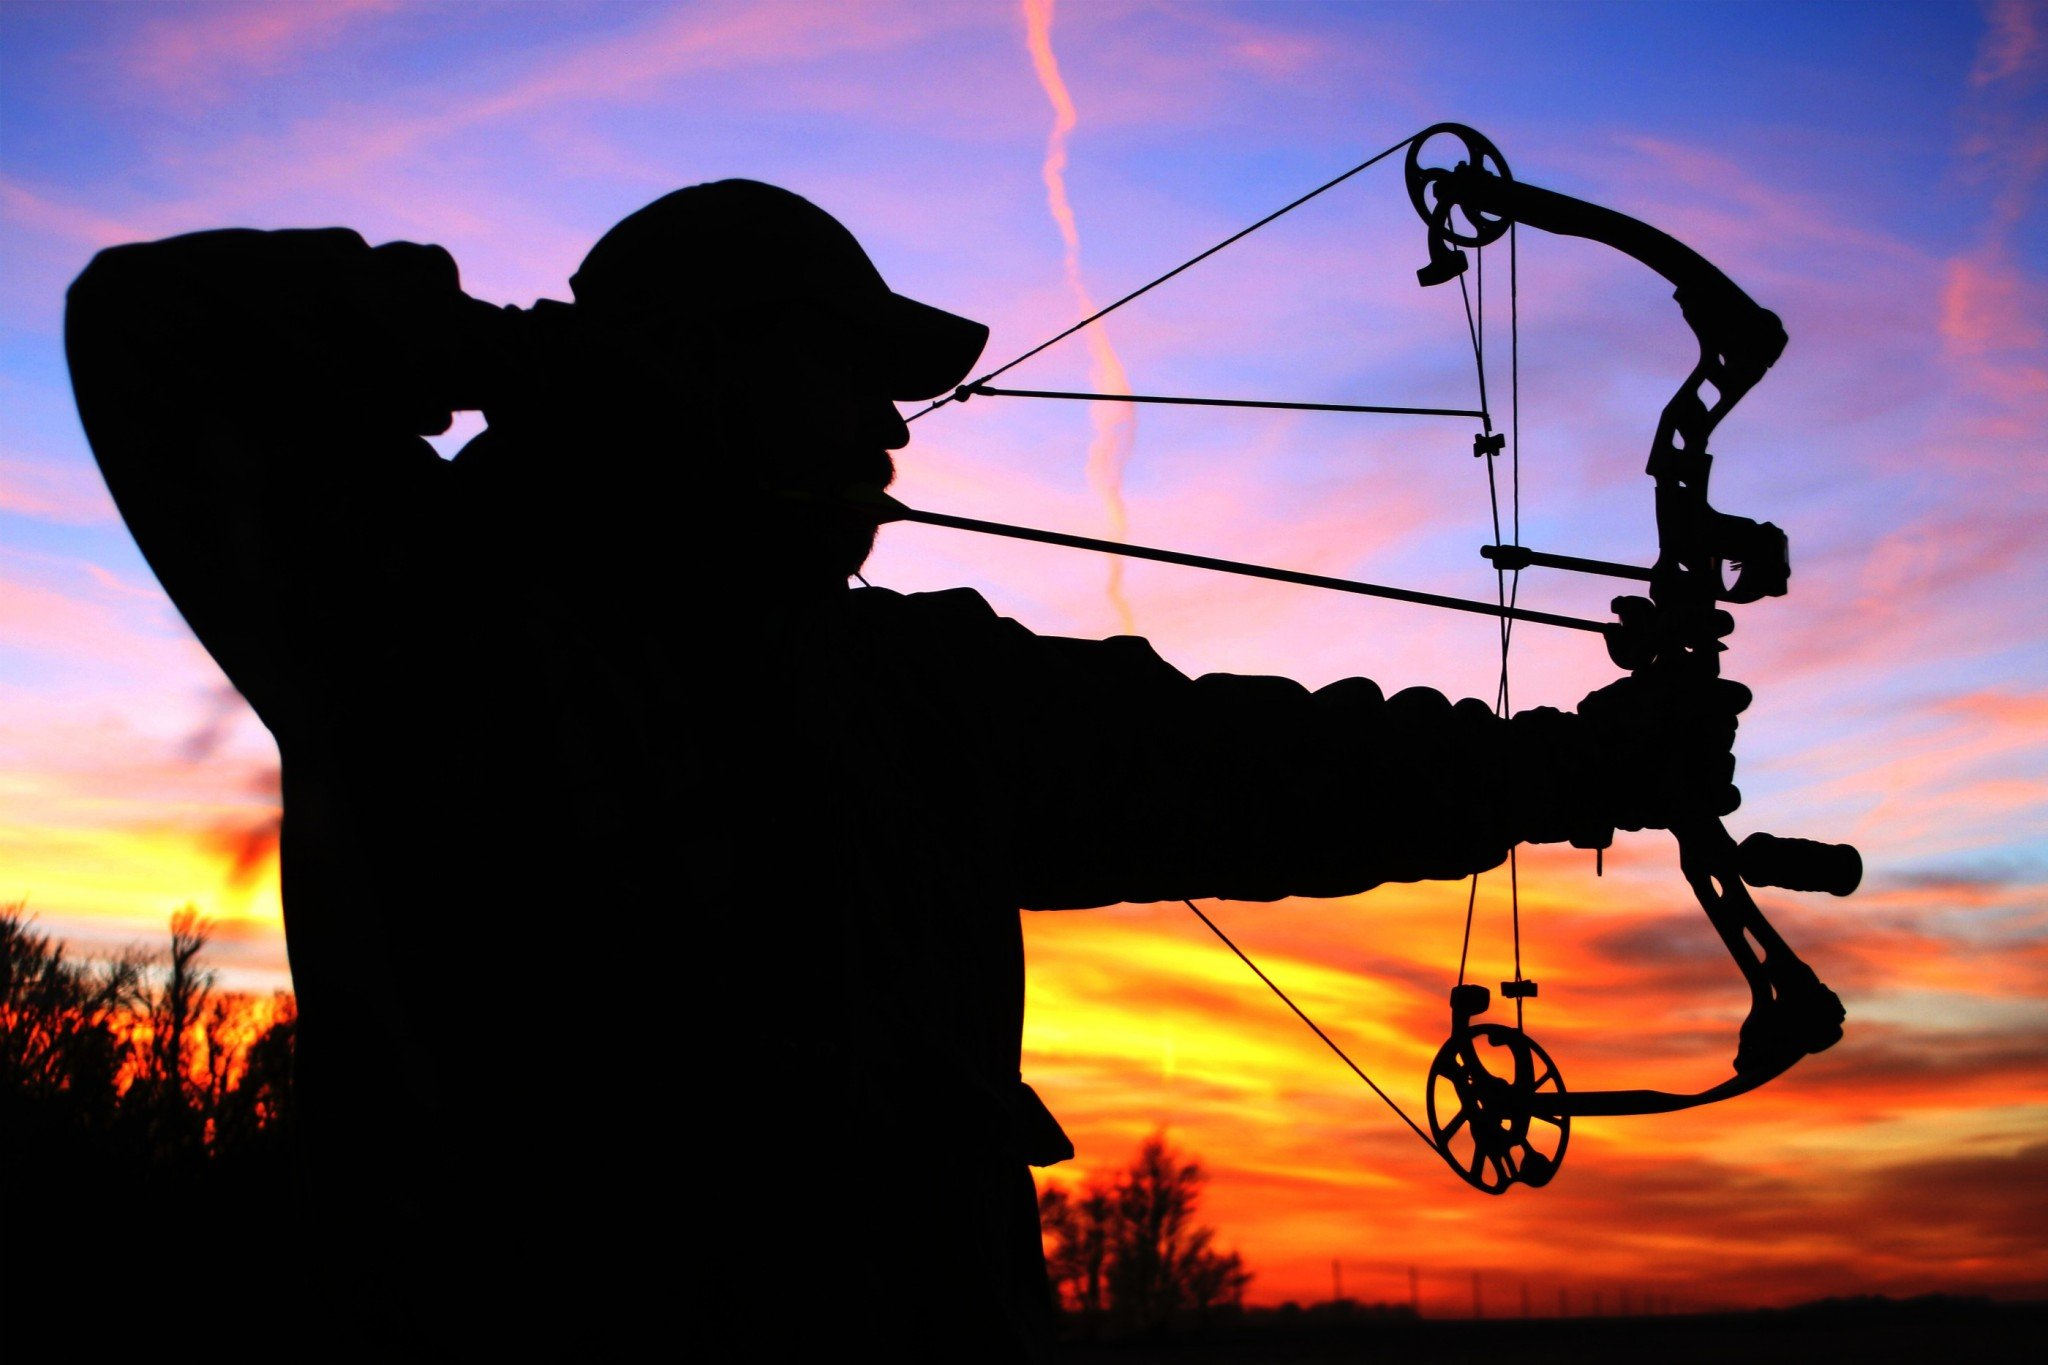 Bow Hunting Archery Archer Bow Arrow Hunting Weapon HD Wallpapers Download Free Images Wallpaper [1000image.com]